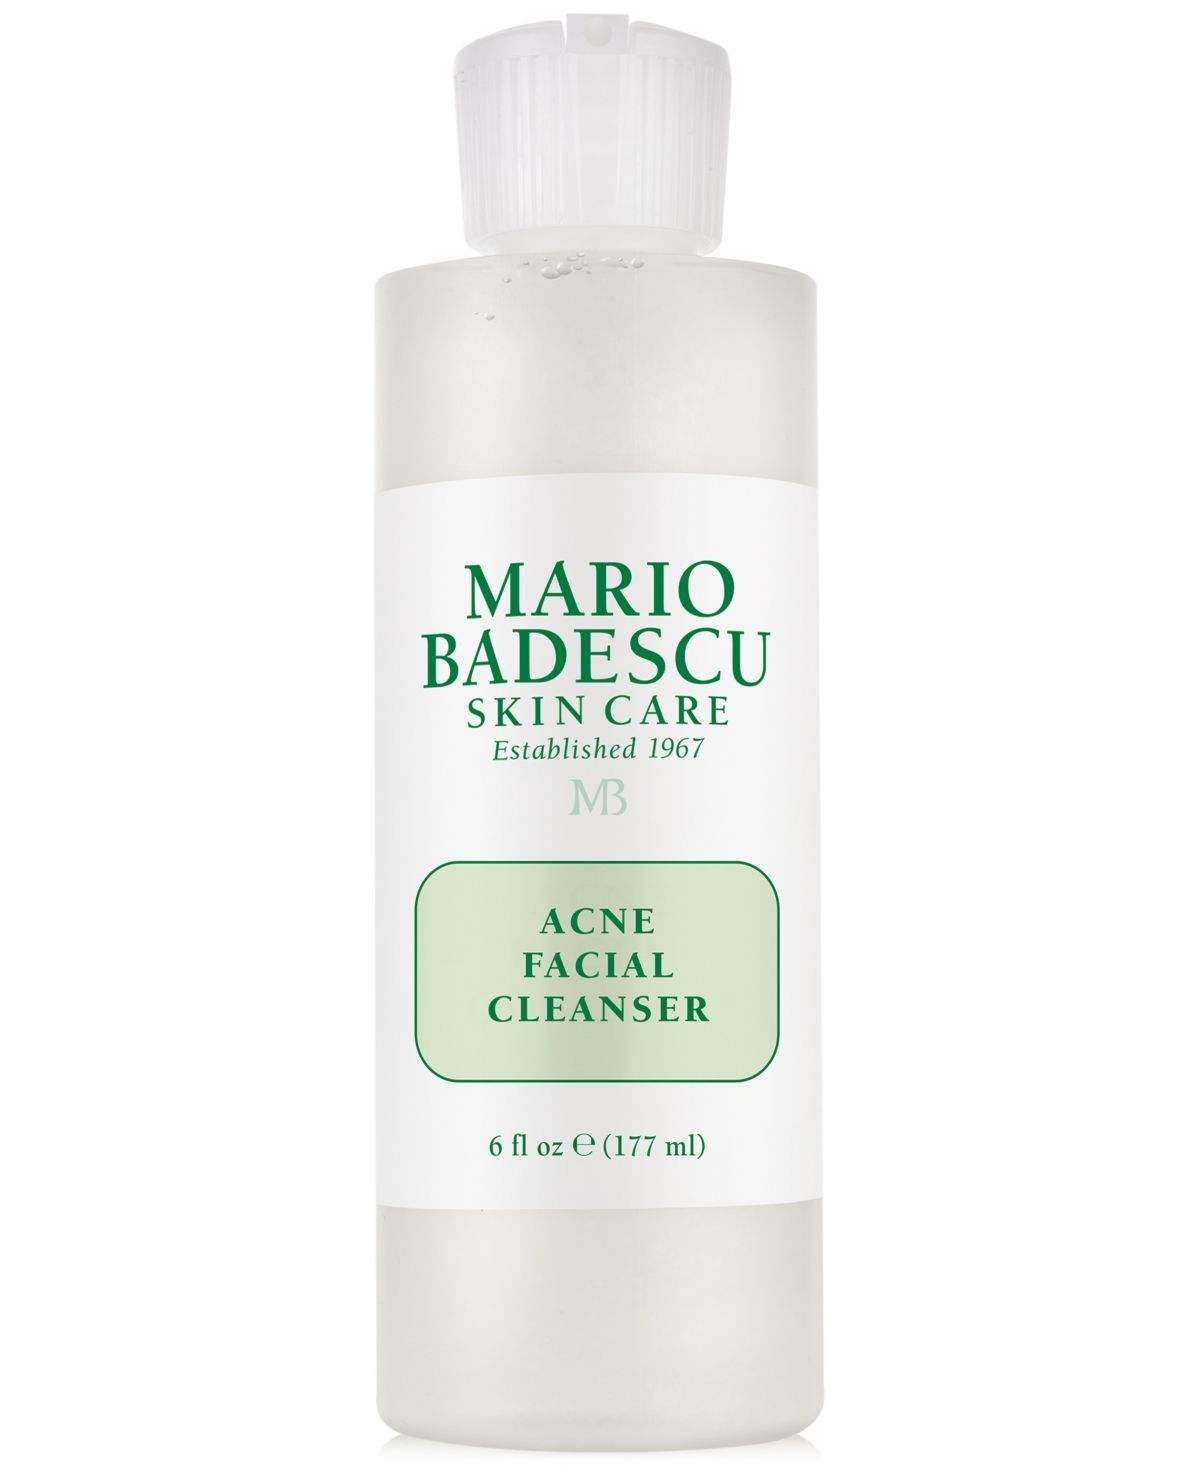 Mario Badescu Acne Facial Cleanser 6 Oz Reviews Skin Care Beauty Macy S In 2020 Skin Cleanser Products Facial Cleanser Mario Badescu Acne